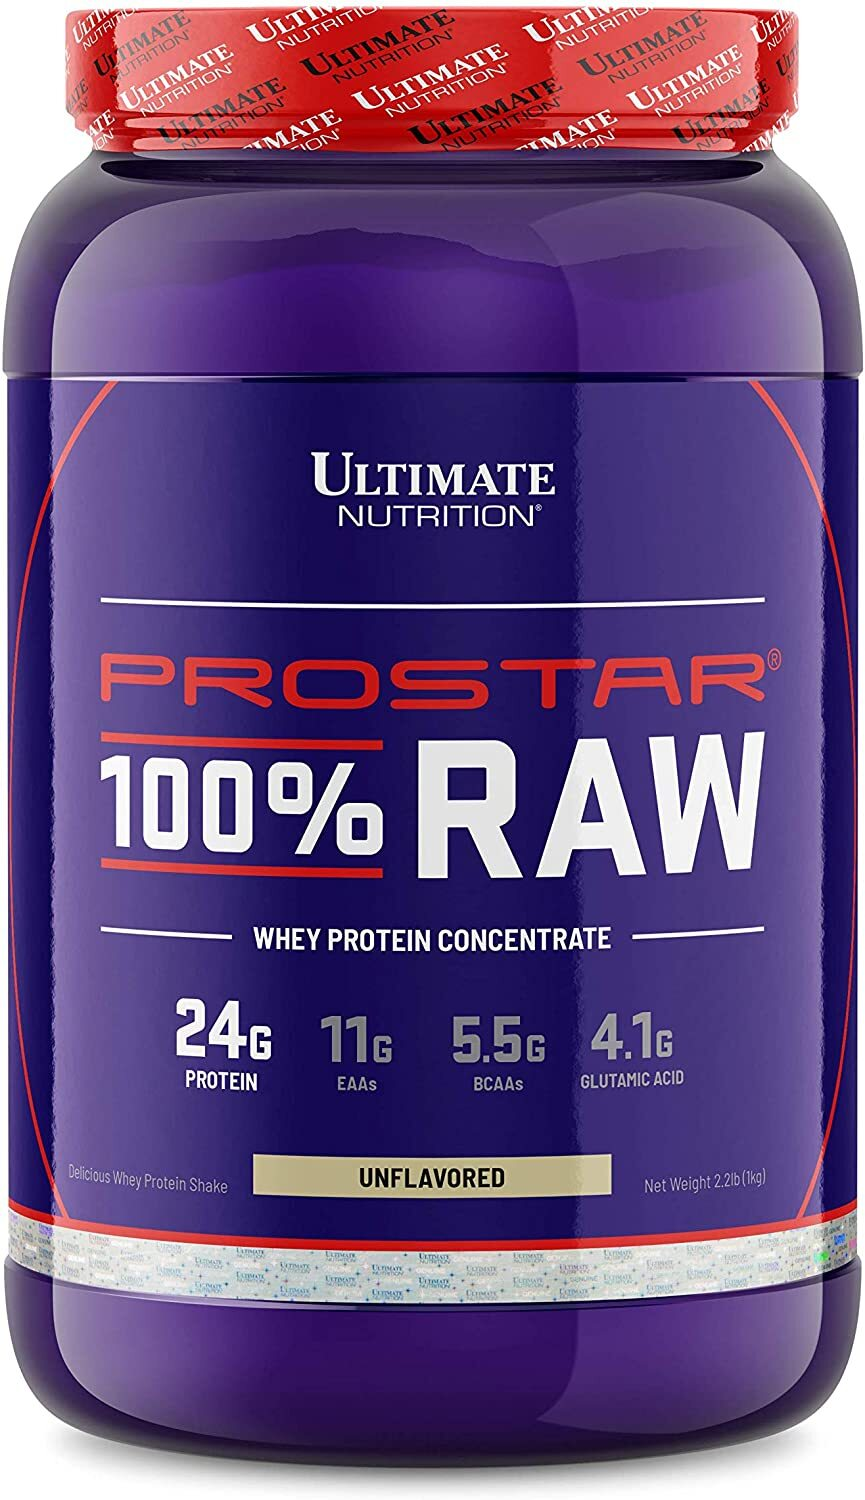 Ultimate Nutrition | News, Reviews